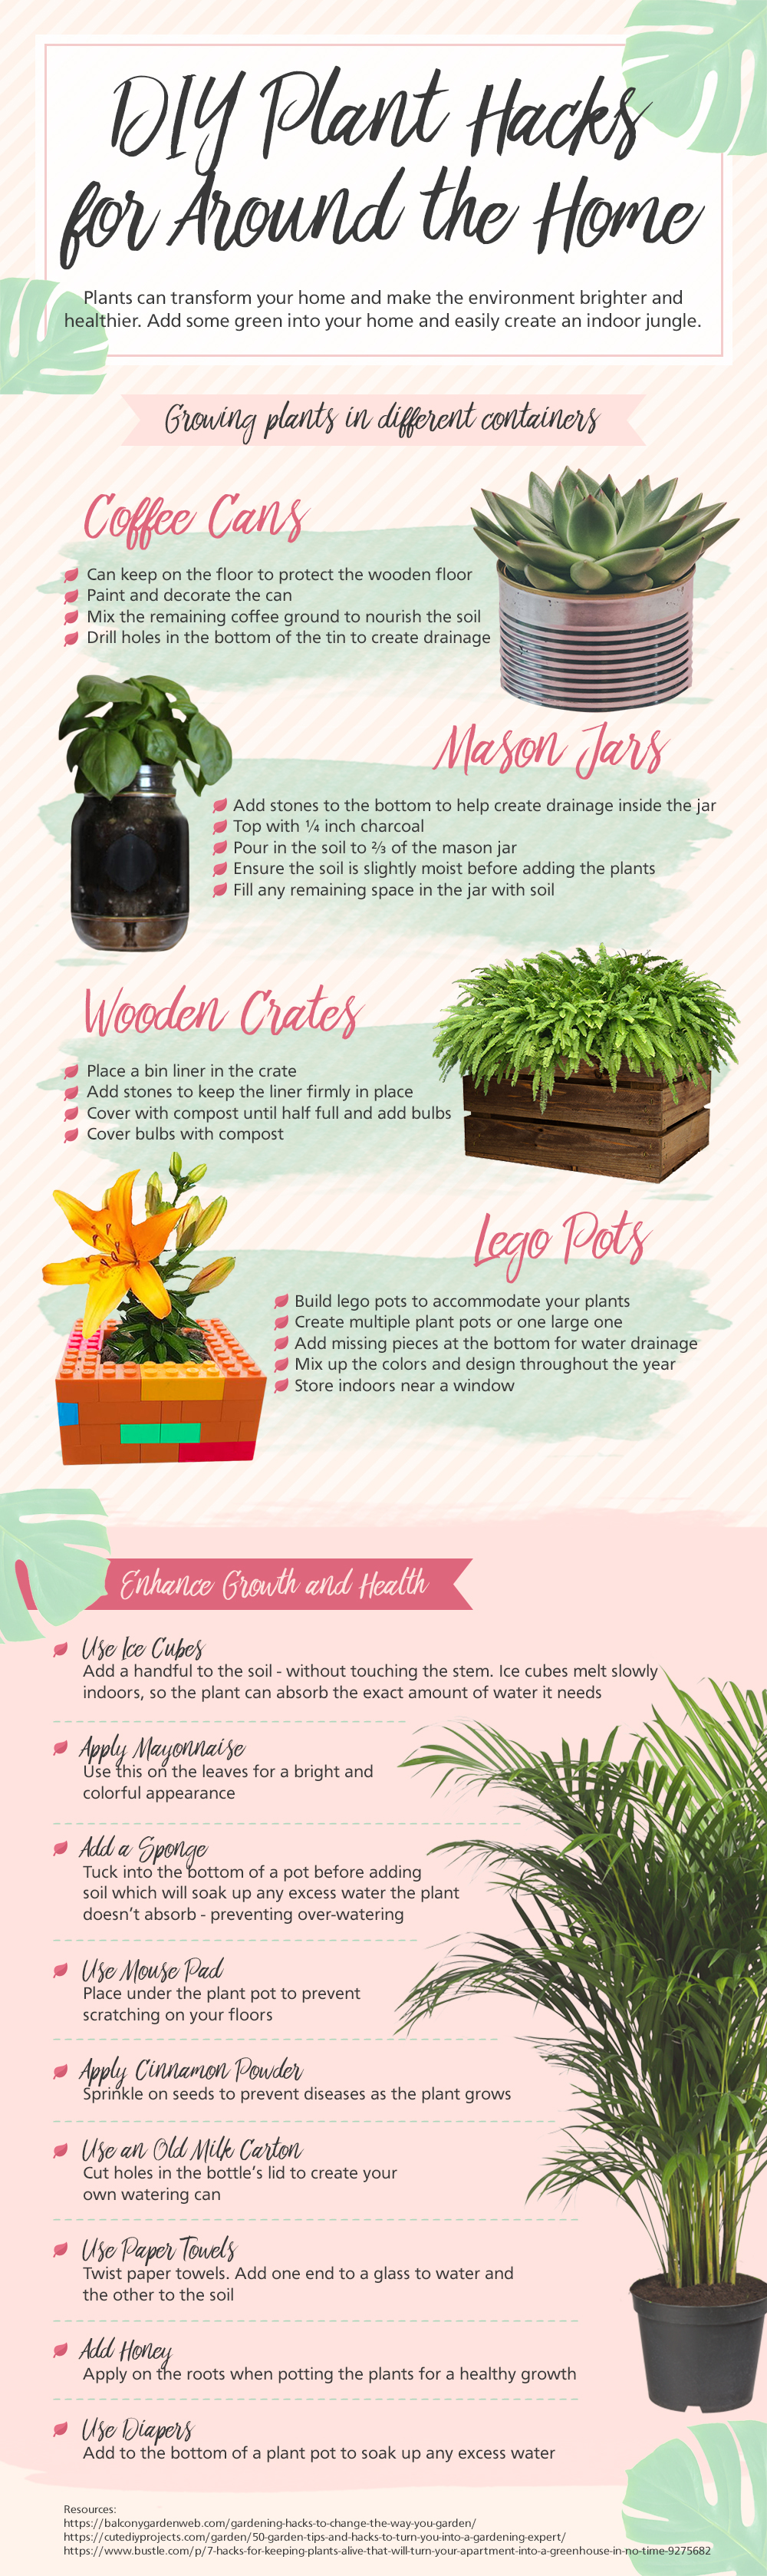 DIY Plant Hacks for Around the Home